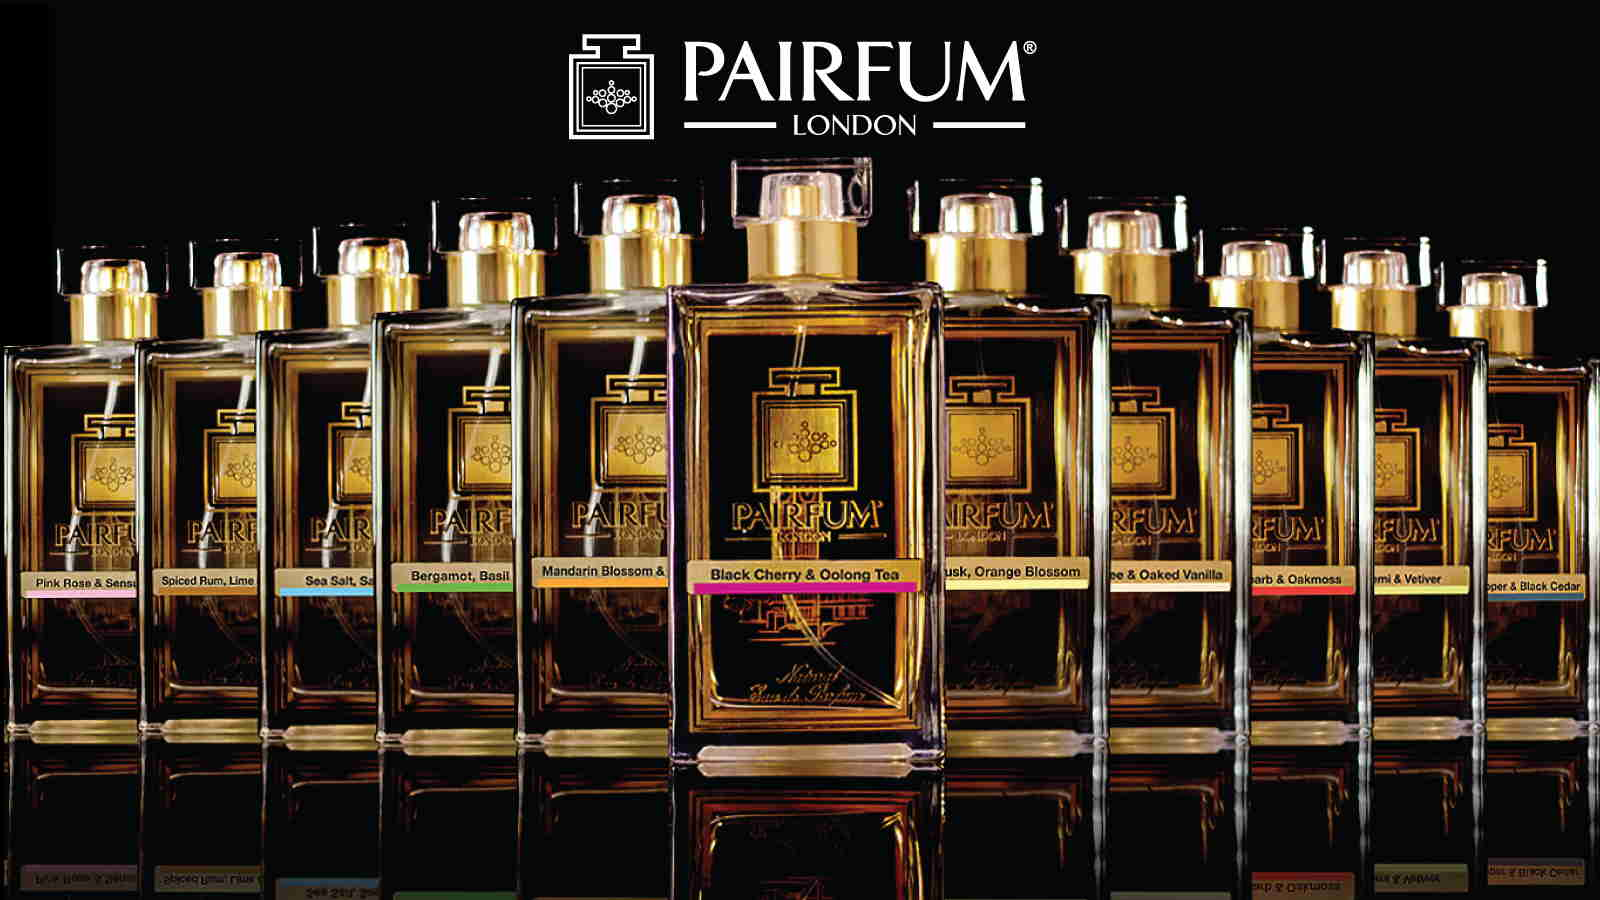 Pairfum London Natural Niche Eau De Parfum Range 16 9